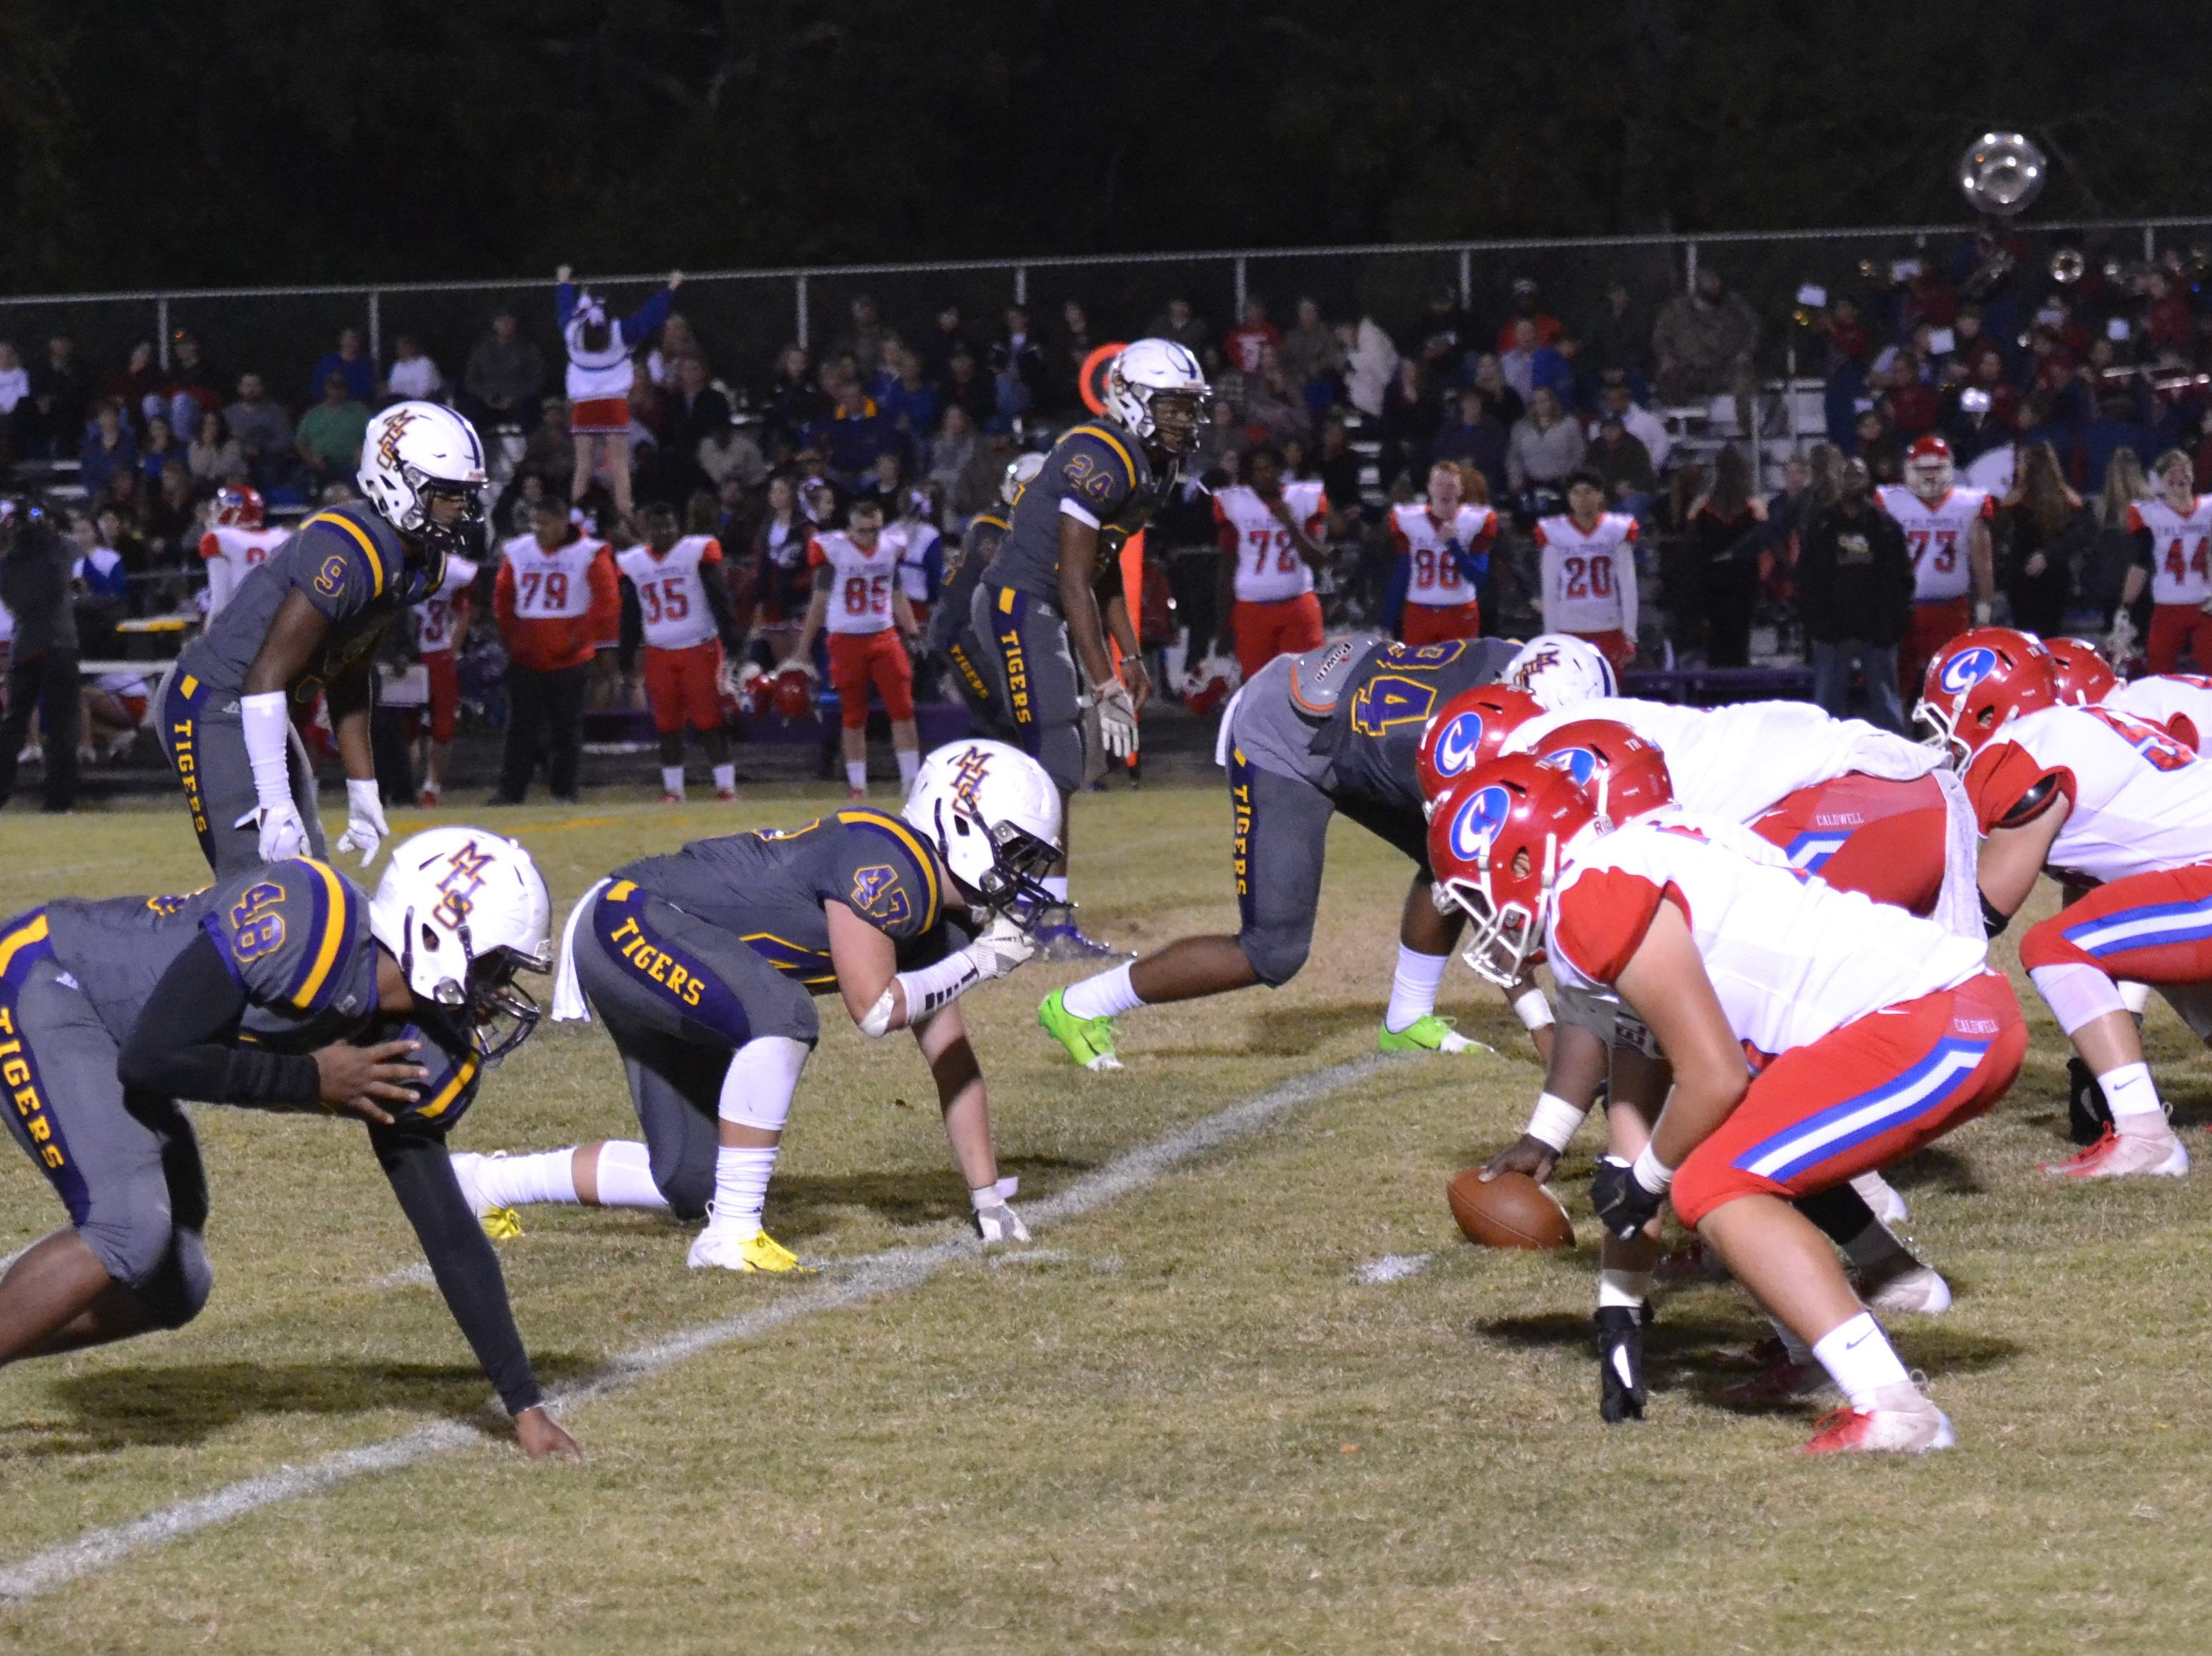 The Tigers' defense digs in against the Spartans. Marksville and Caldwell met in the regular season finale Friday night with Caldwell edging Marksville 13-8.